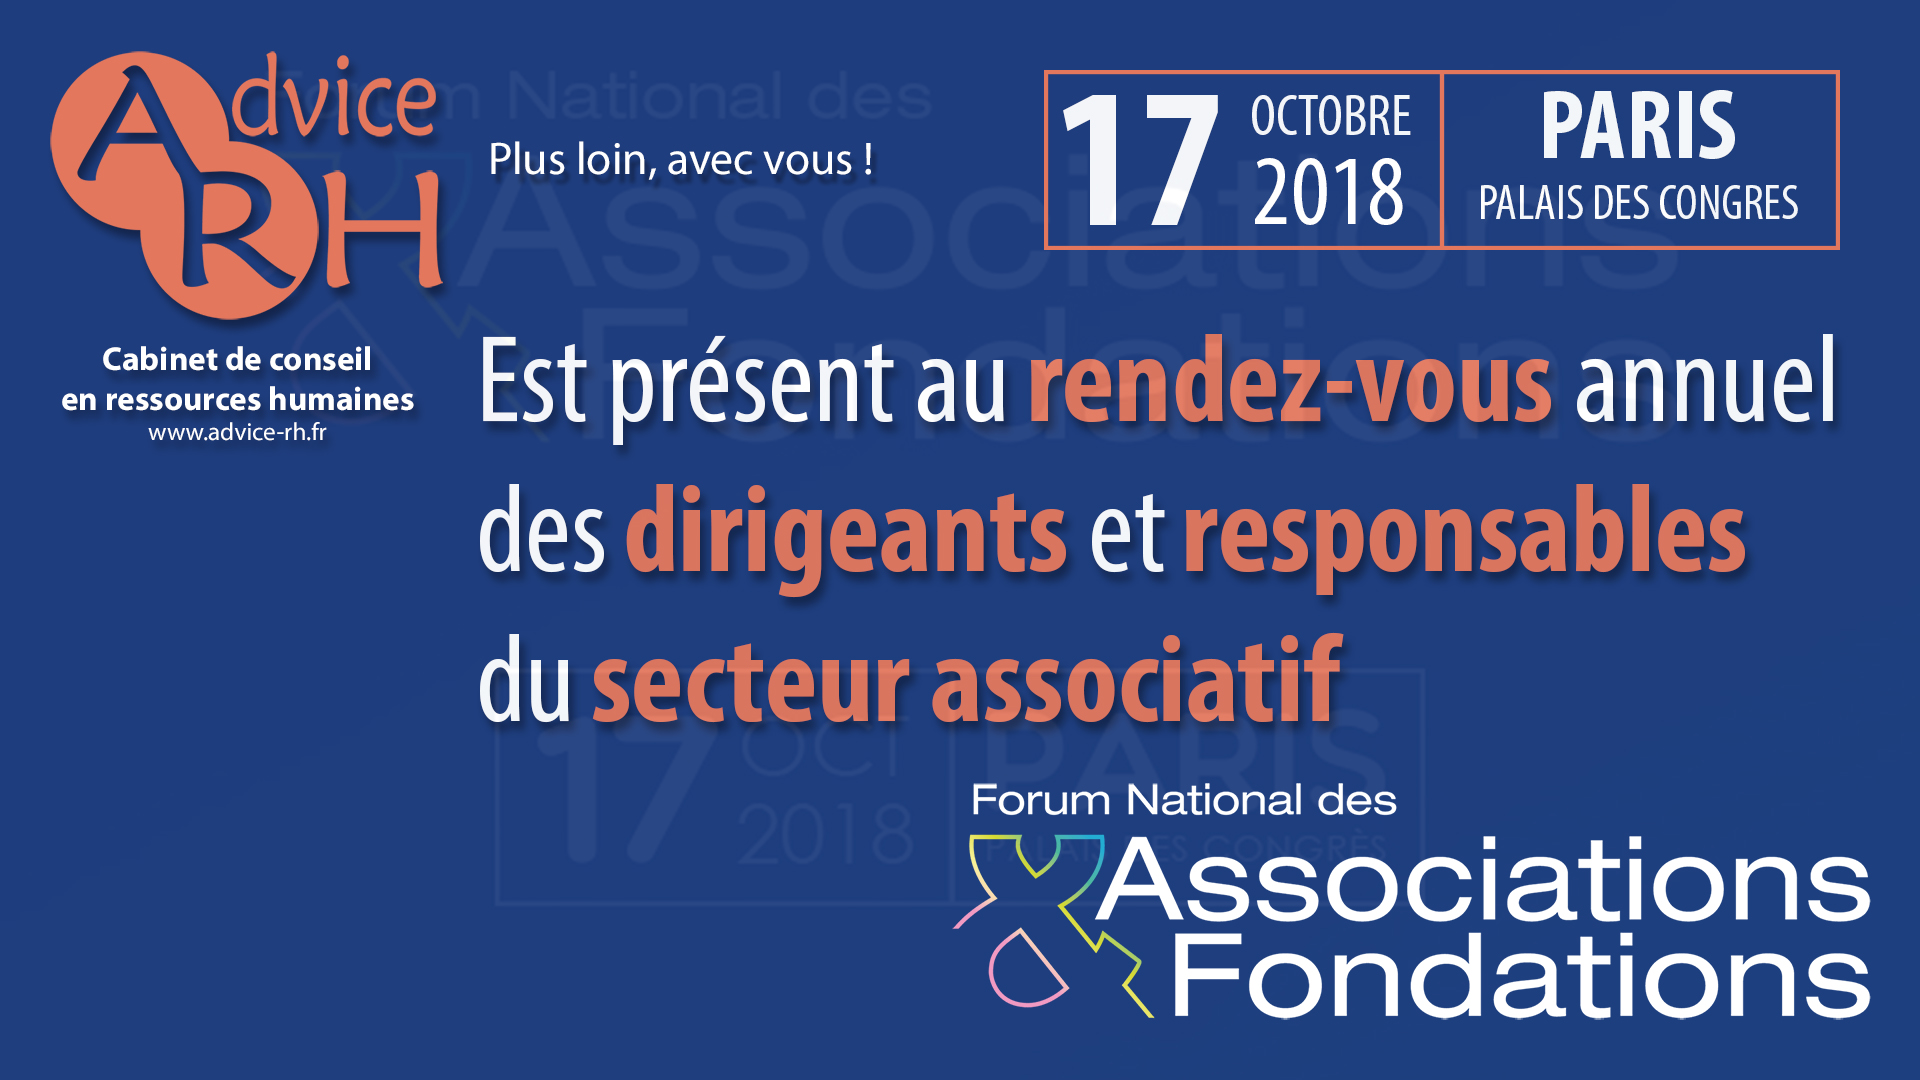 Advice RH - Forum National des Associations & Fondations